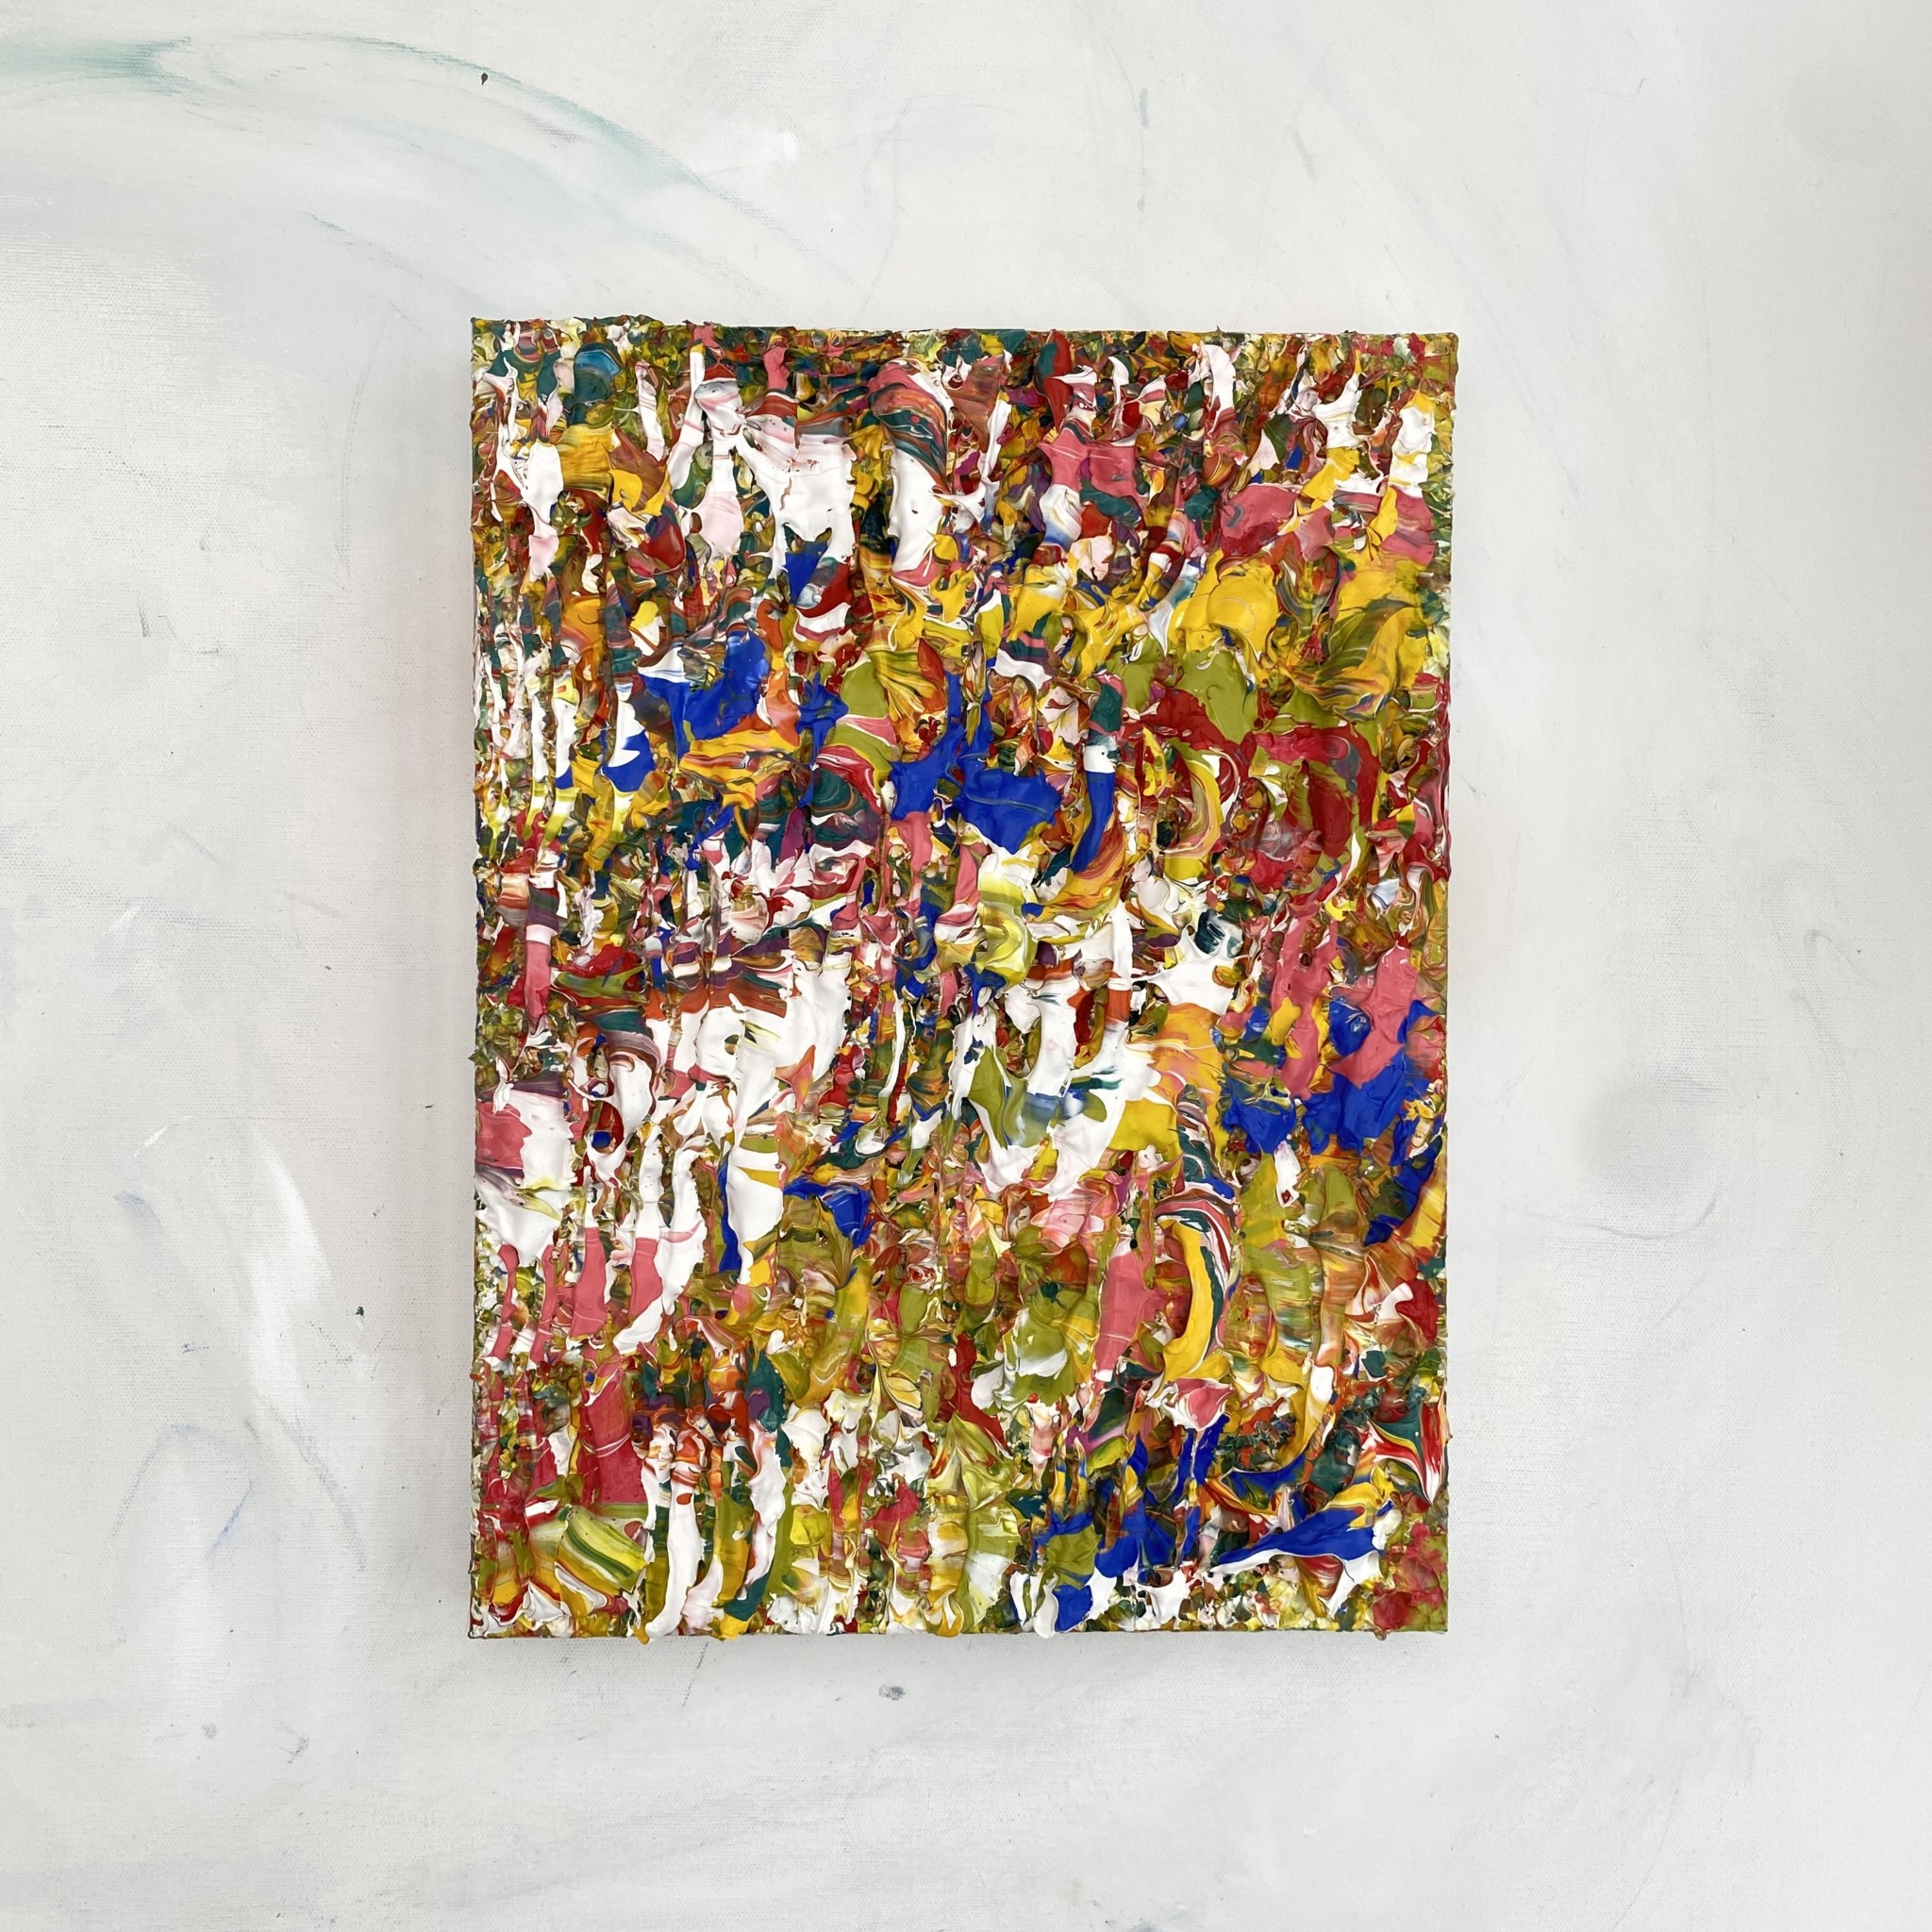 Tropics full view hanging colourful abstract textured impasto painting sculpted on canvas pink green yellow blue inspired by plant life